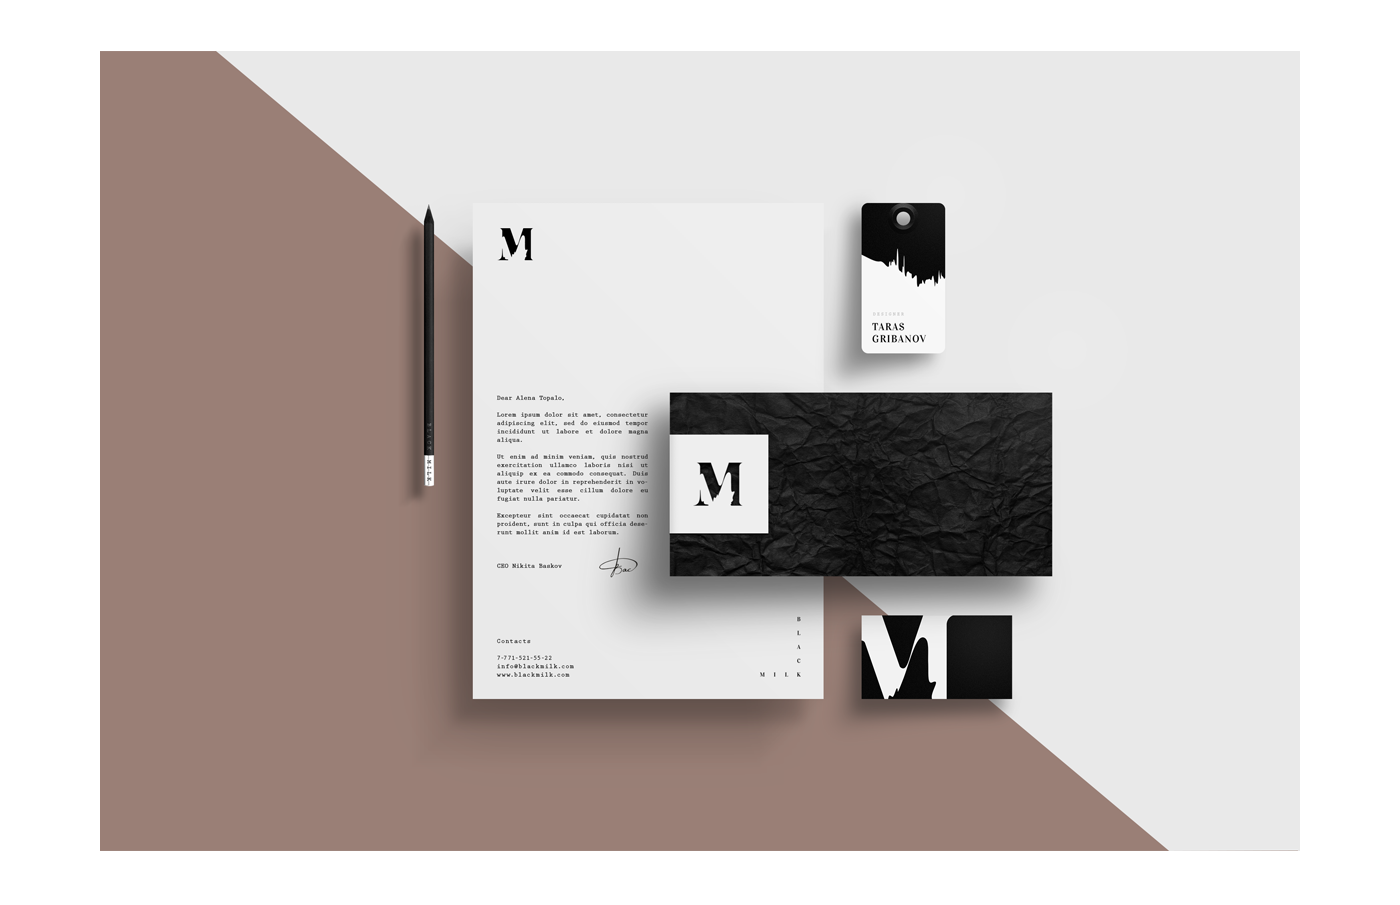 visual identity business card the envelope badge logo luxury wedding celebration best clear minimal White brown trend abstraction